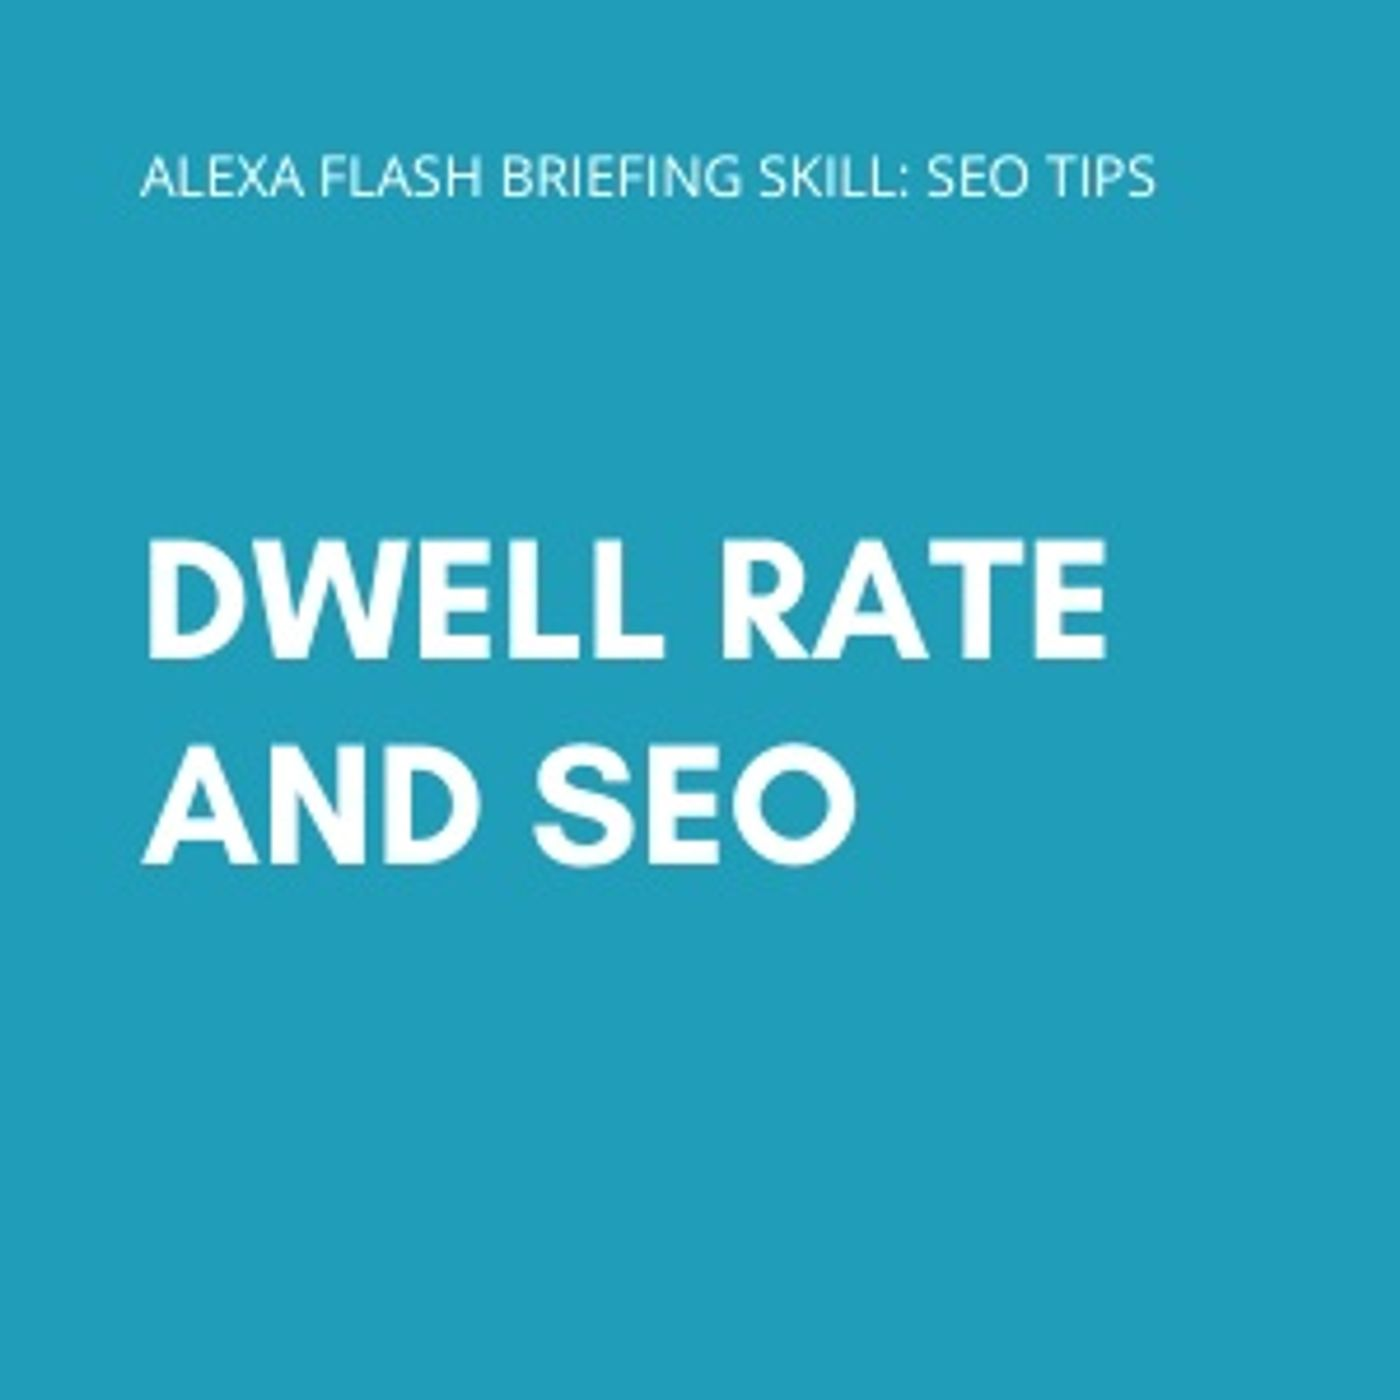 Dwell rate and SEO